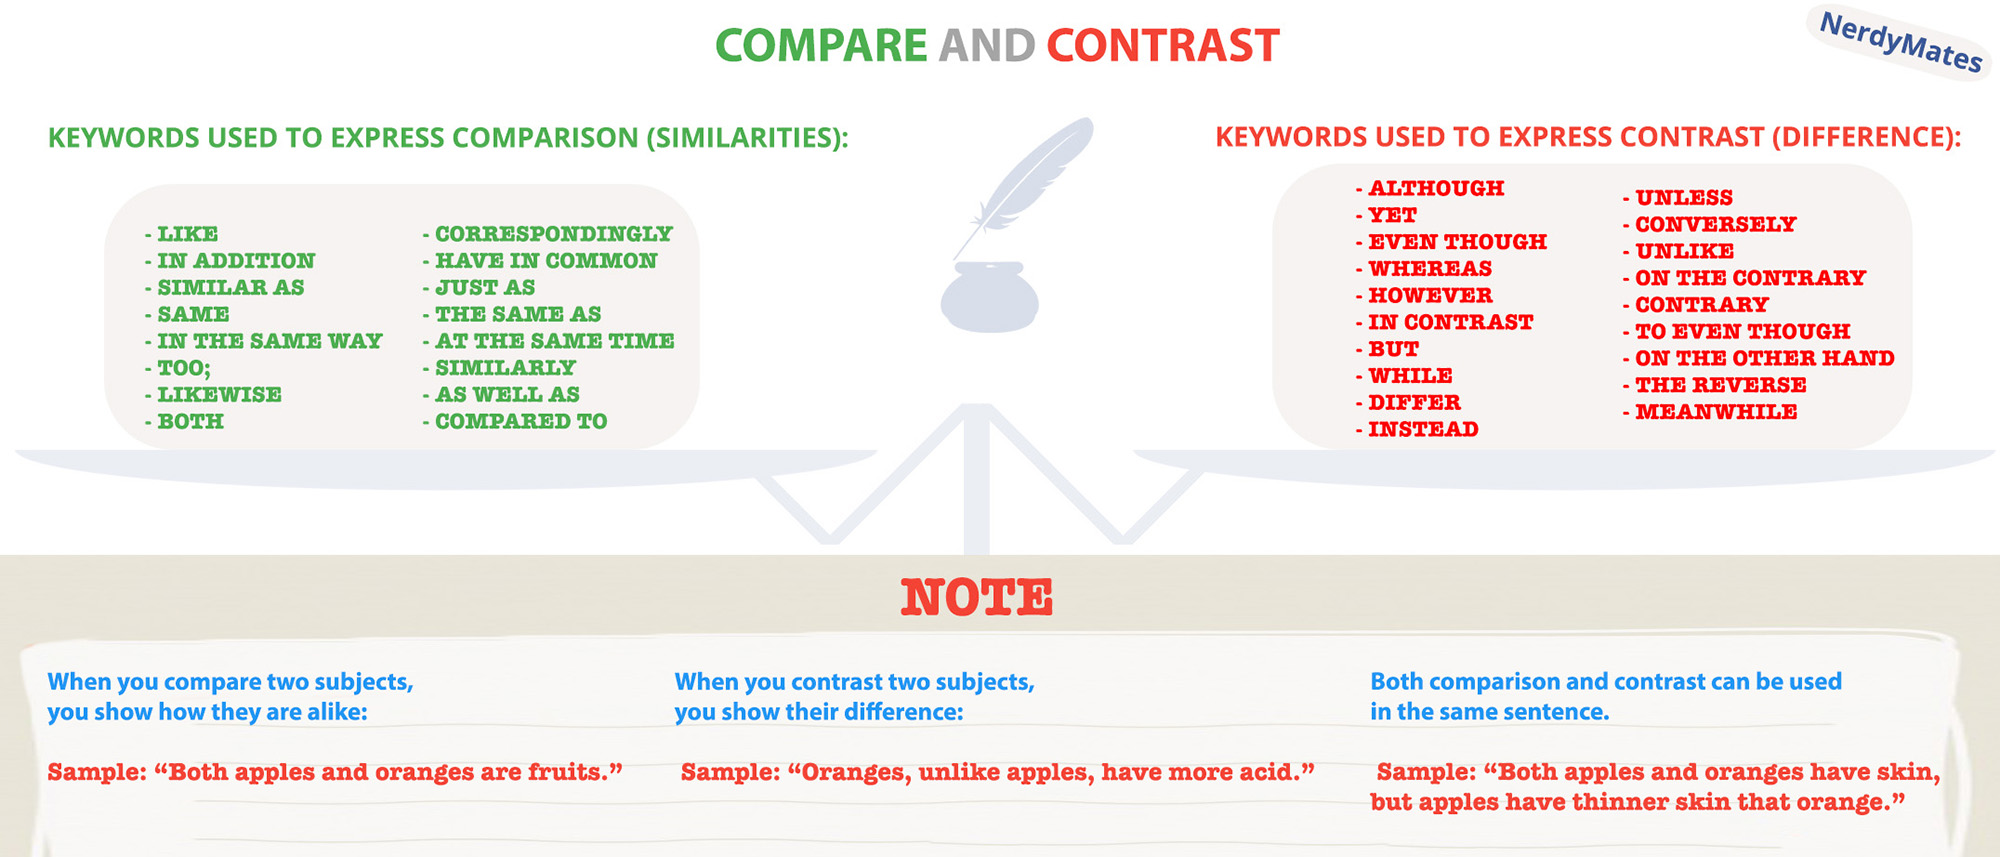 How To Write A Compare And Contrast Essay Unbiased Guide